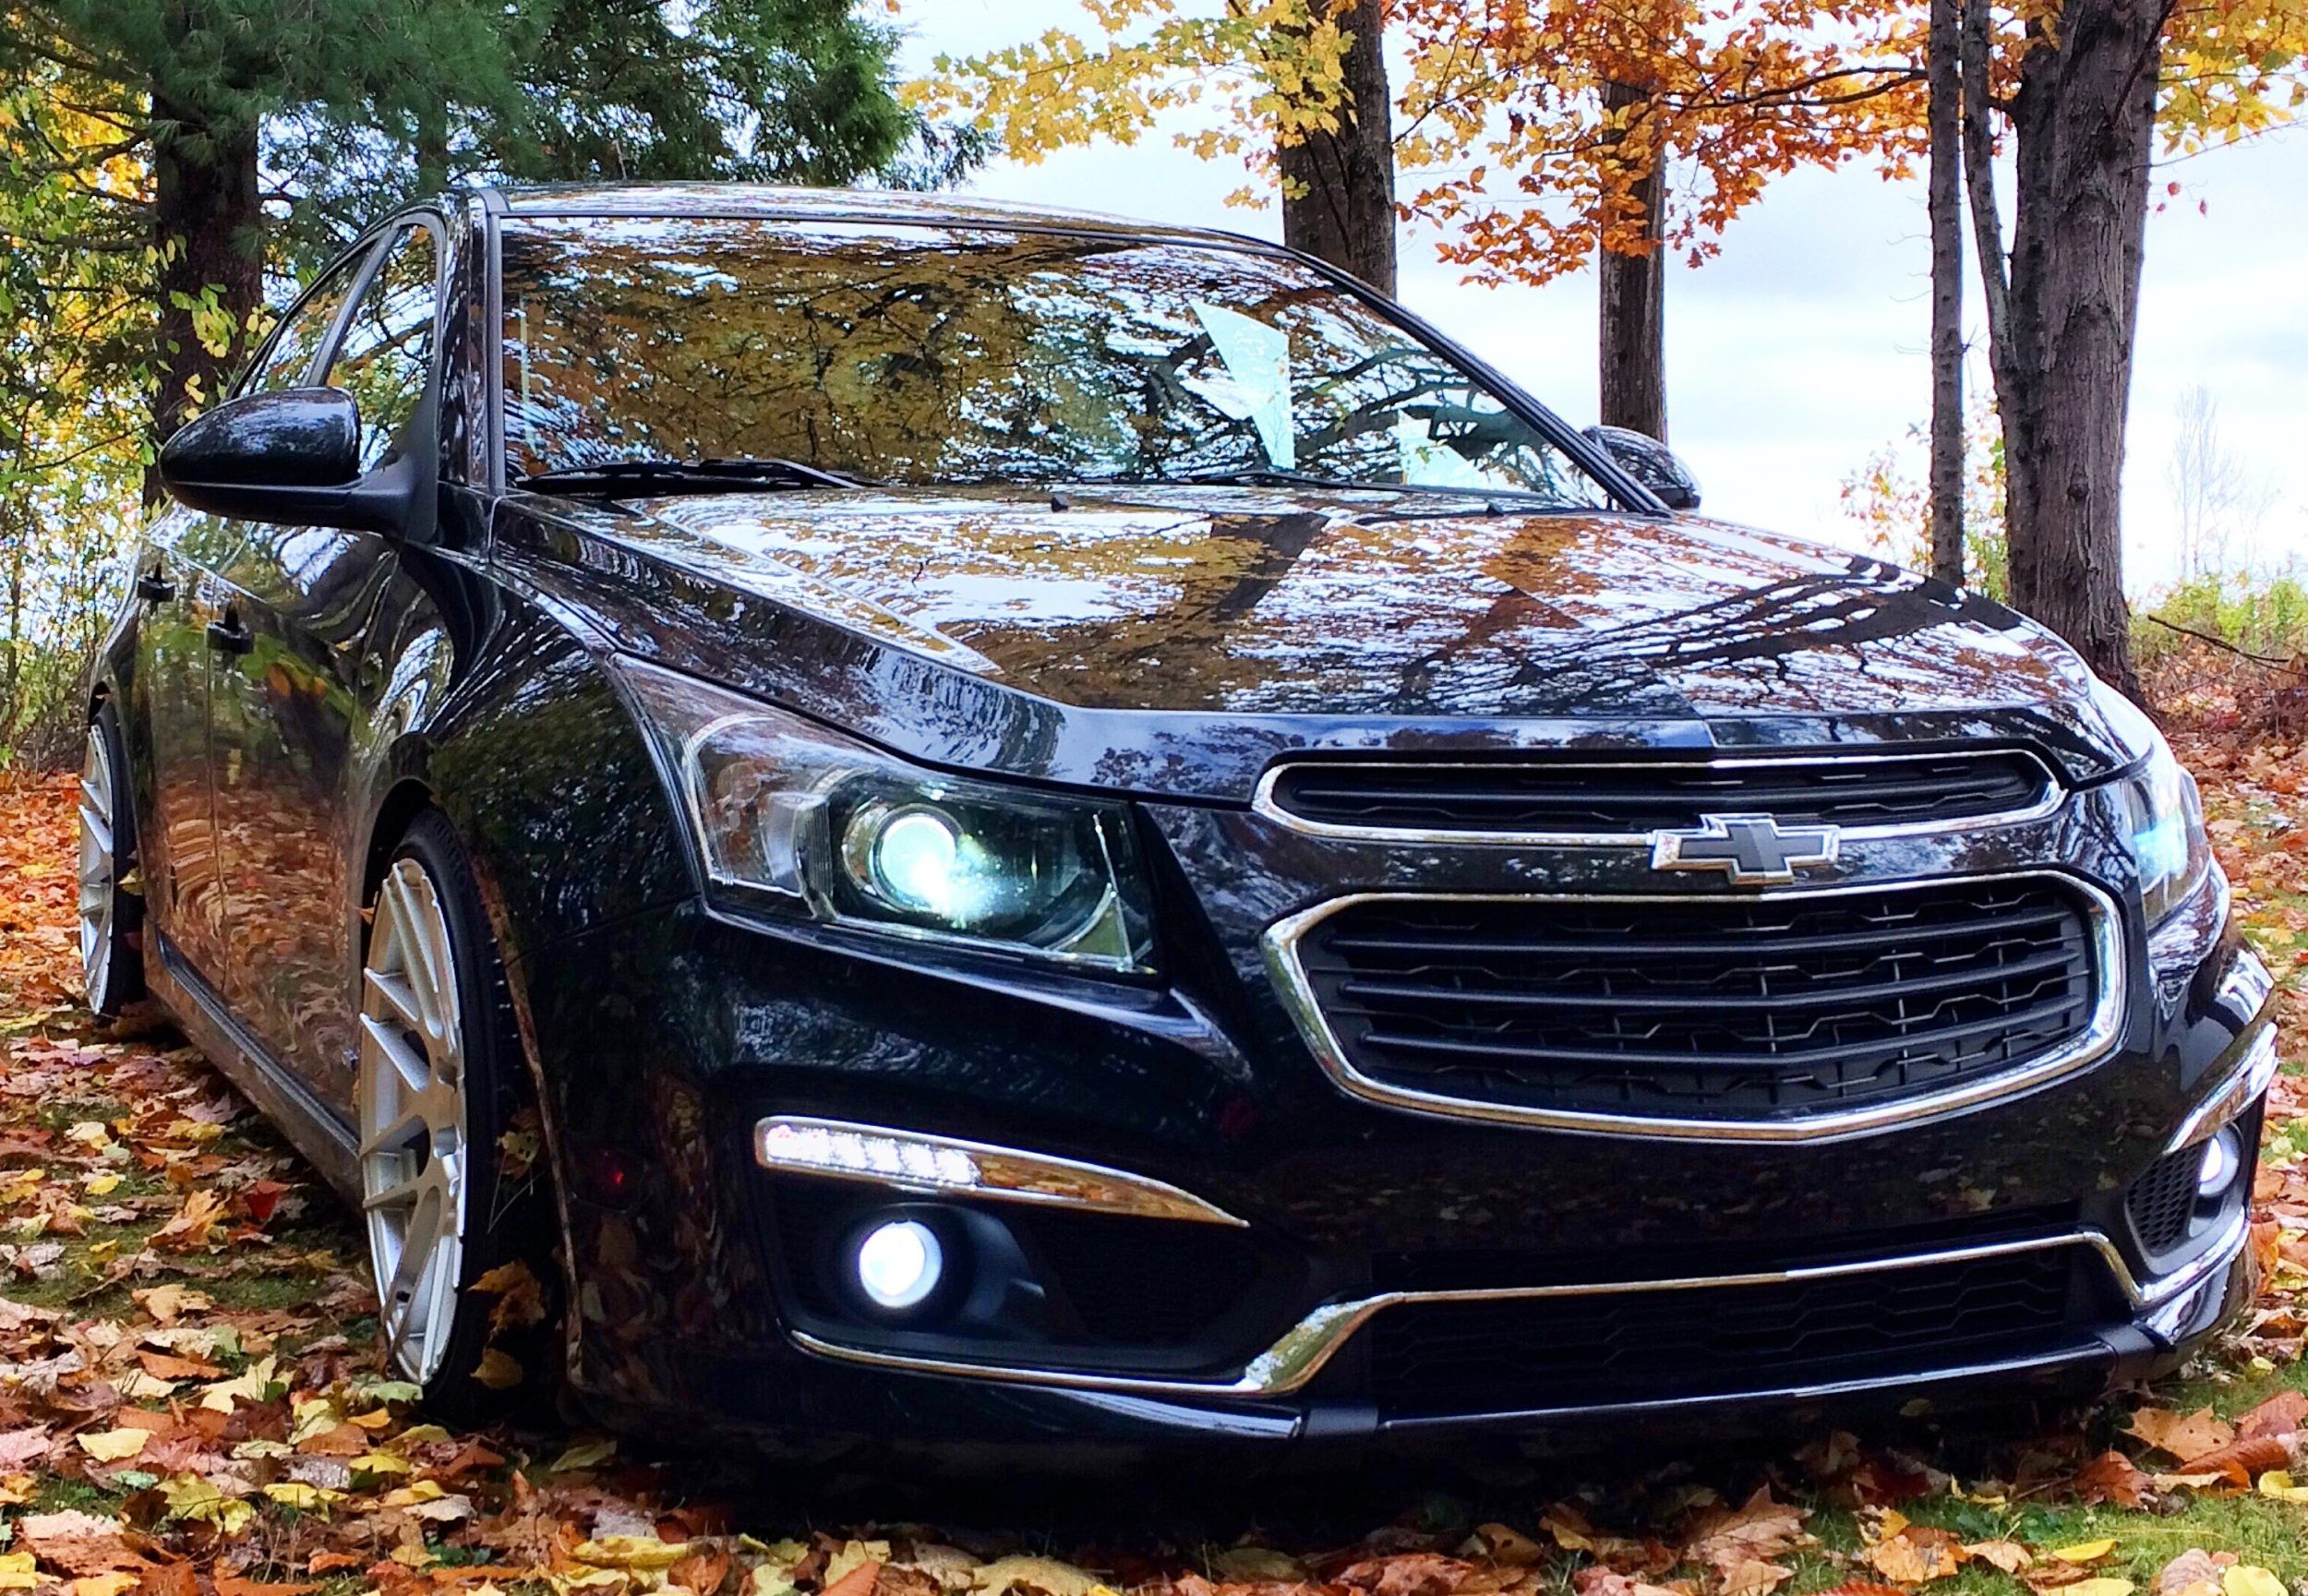 Lowered 2015 Chevy Cruze 2lt Rs 1 4t 6spd Manual Mods